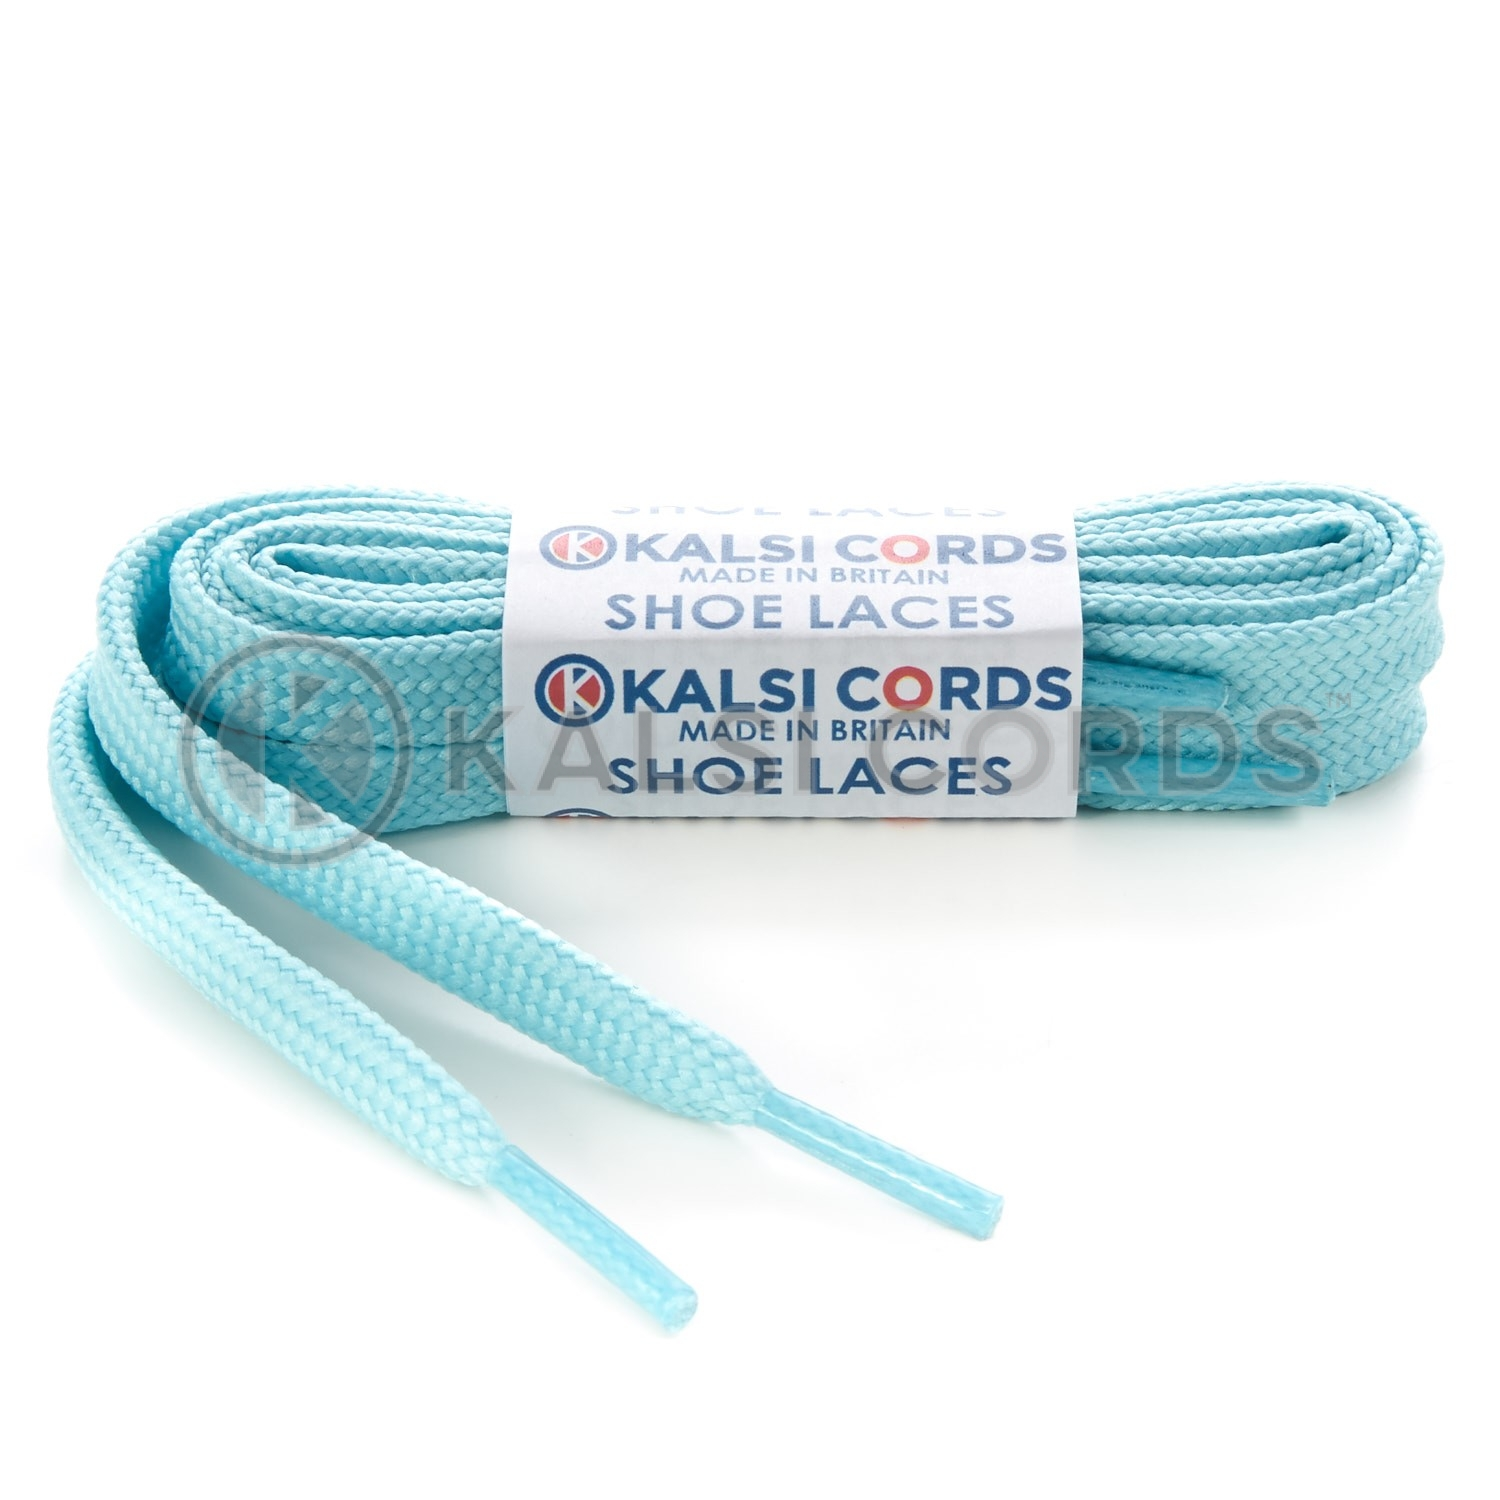 R1176 9mm Flat Shoe Laces Tubular Turquoise PG390 Sports Trainers Boots Footwear Hoodies Joggers Drawstring Drawcord Braid